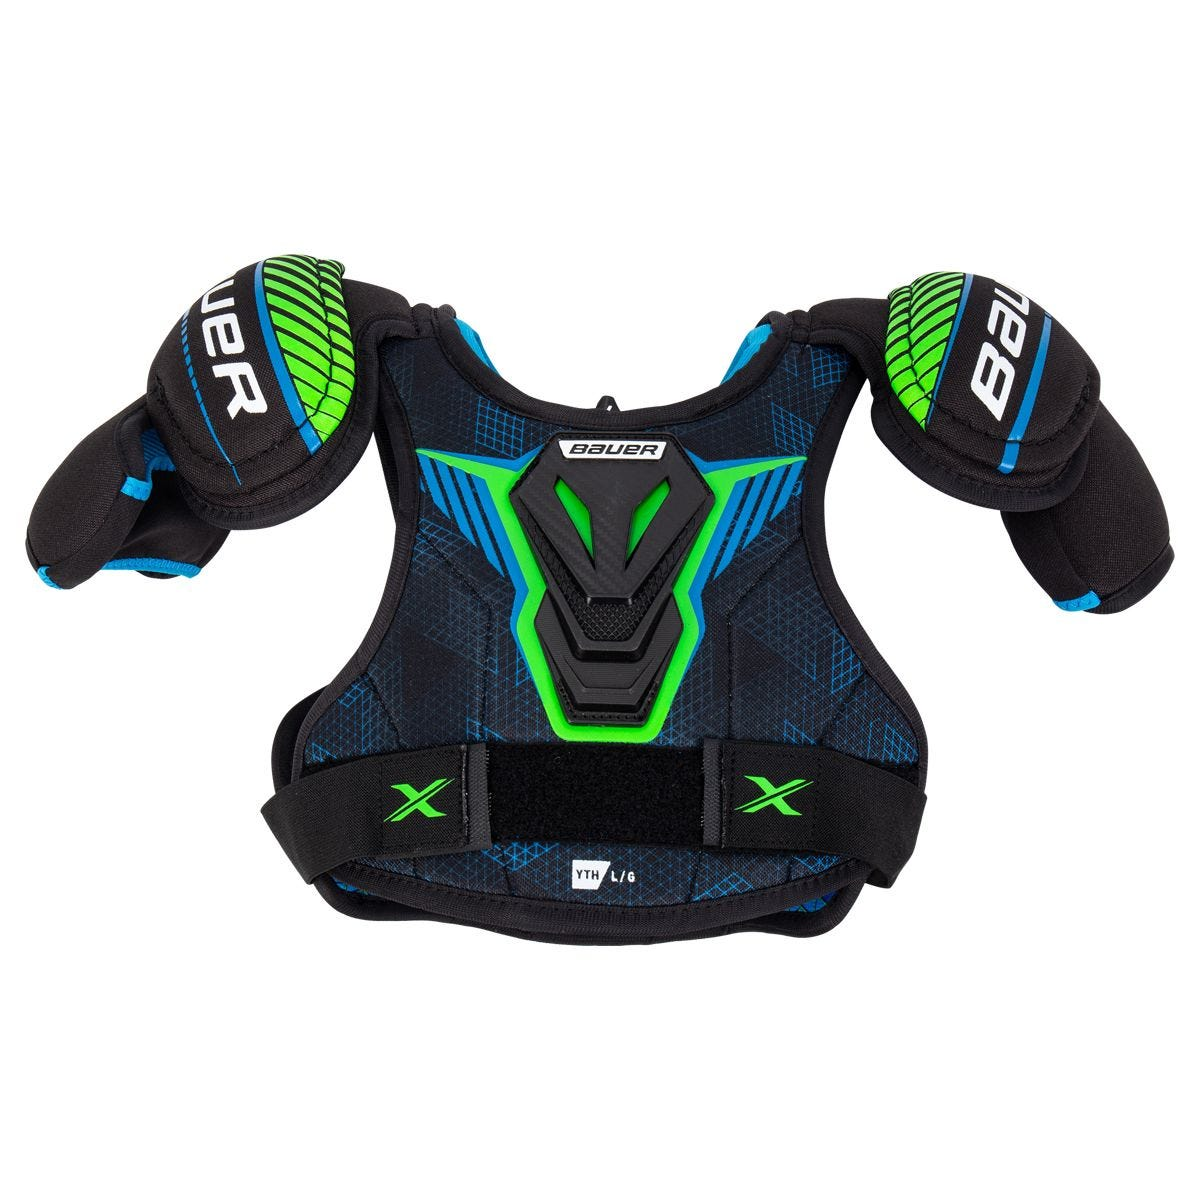 Bauer X Youth Hockey Shoulder Pads